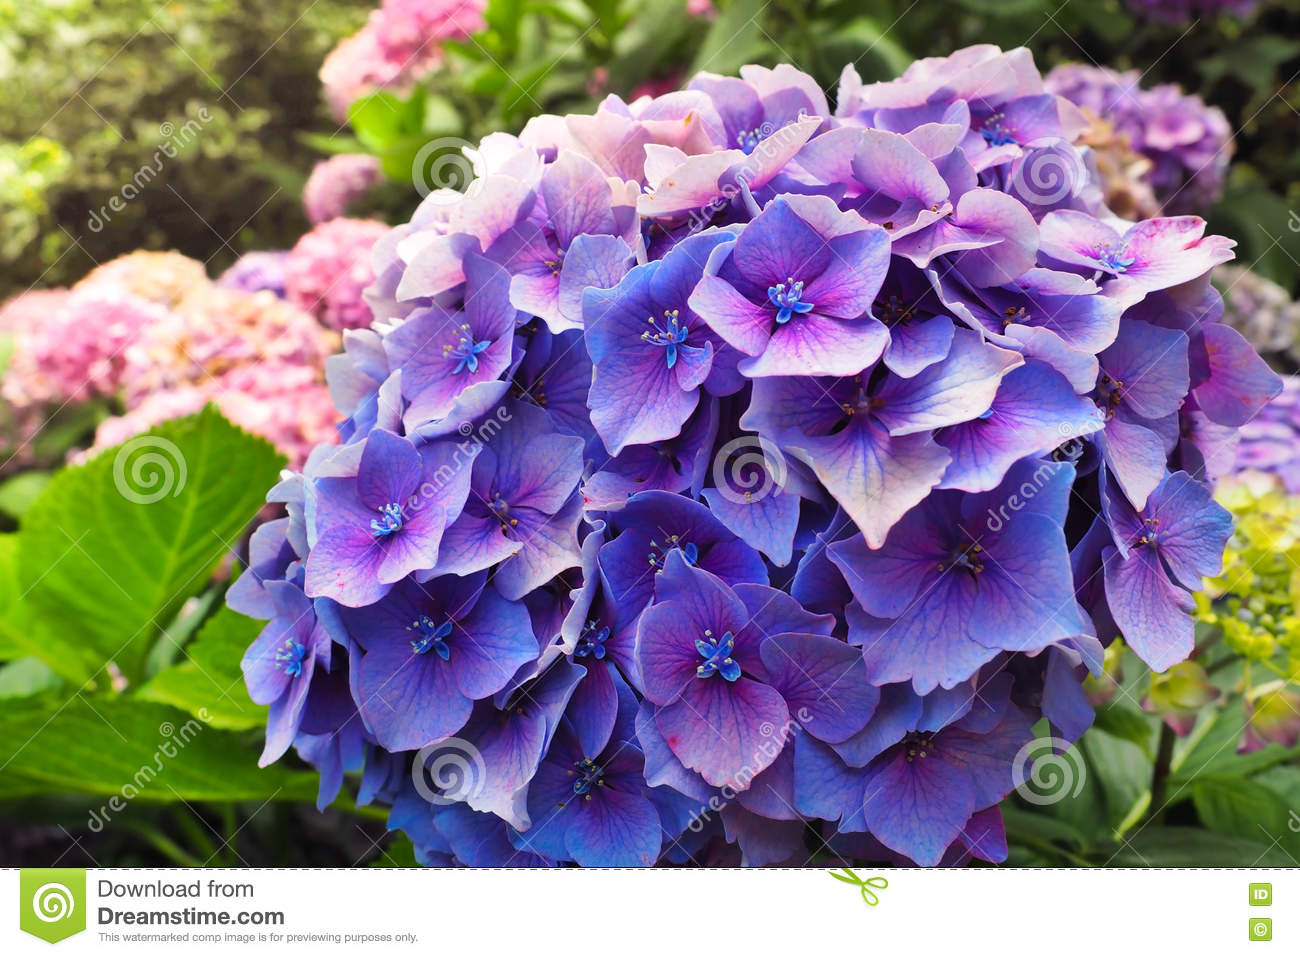 Beautiful purple flowers of hydrangea macrophylla or hortensia in beautiful purple flowers of hydrangea macrophylla or hortensia in the garden izmirmasajfo